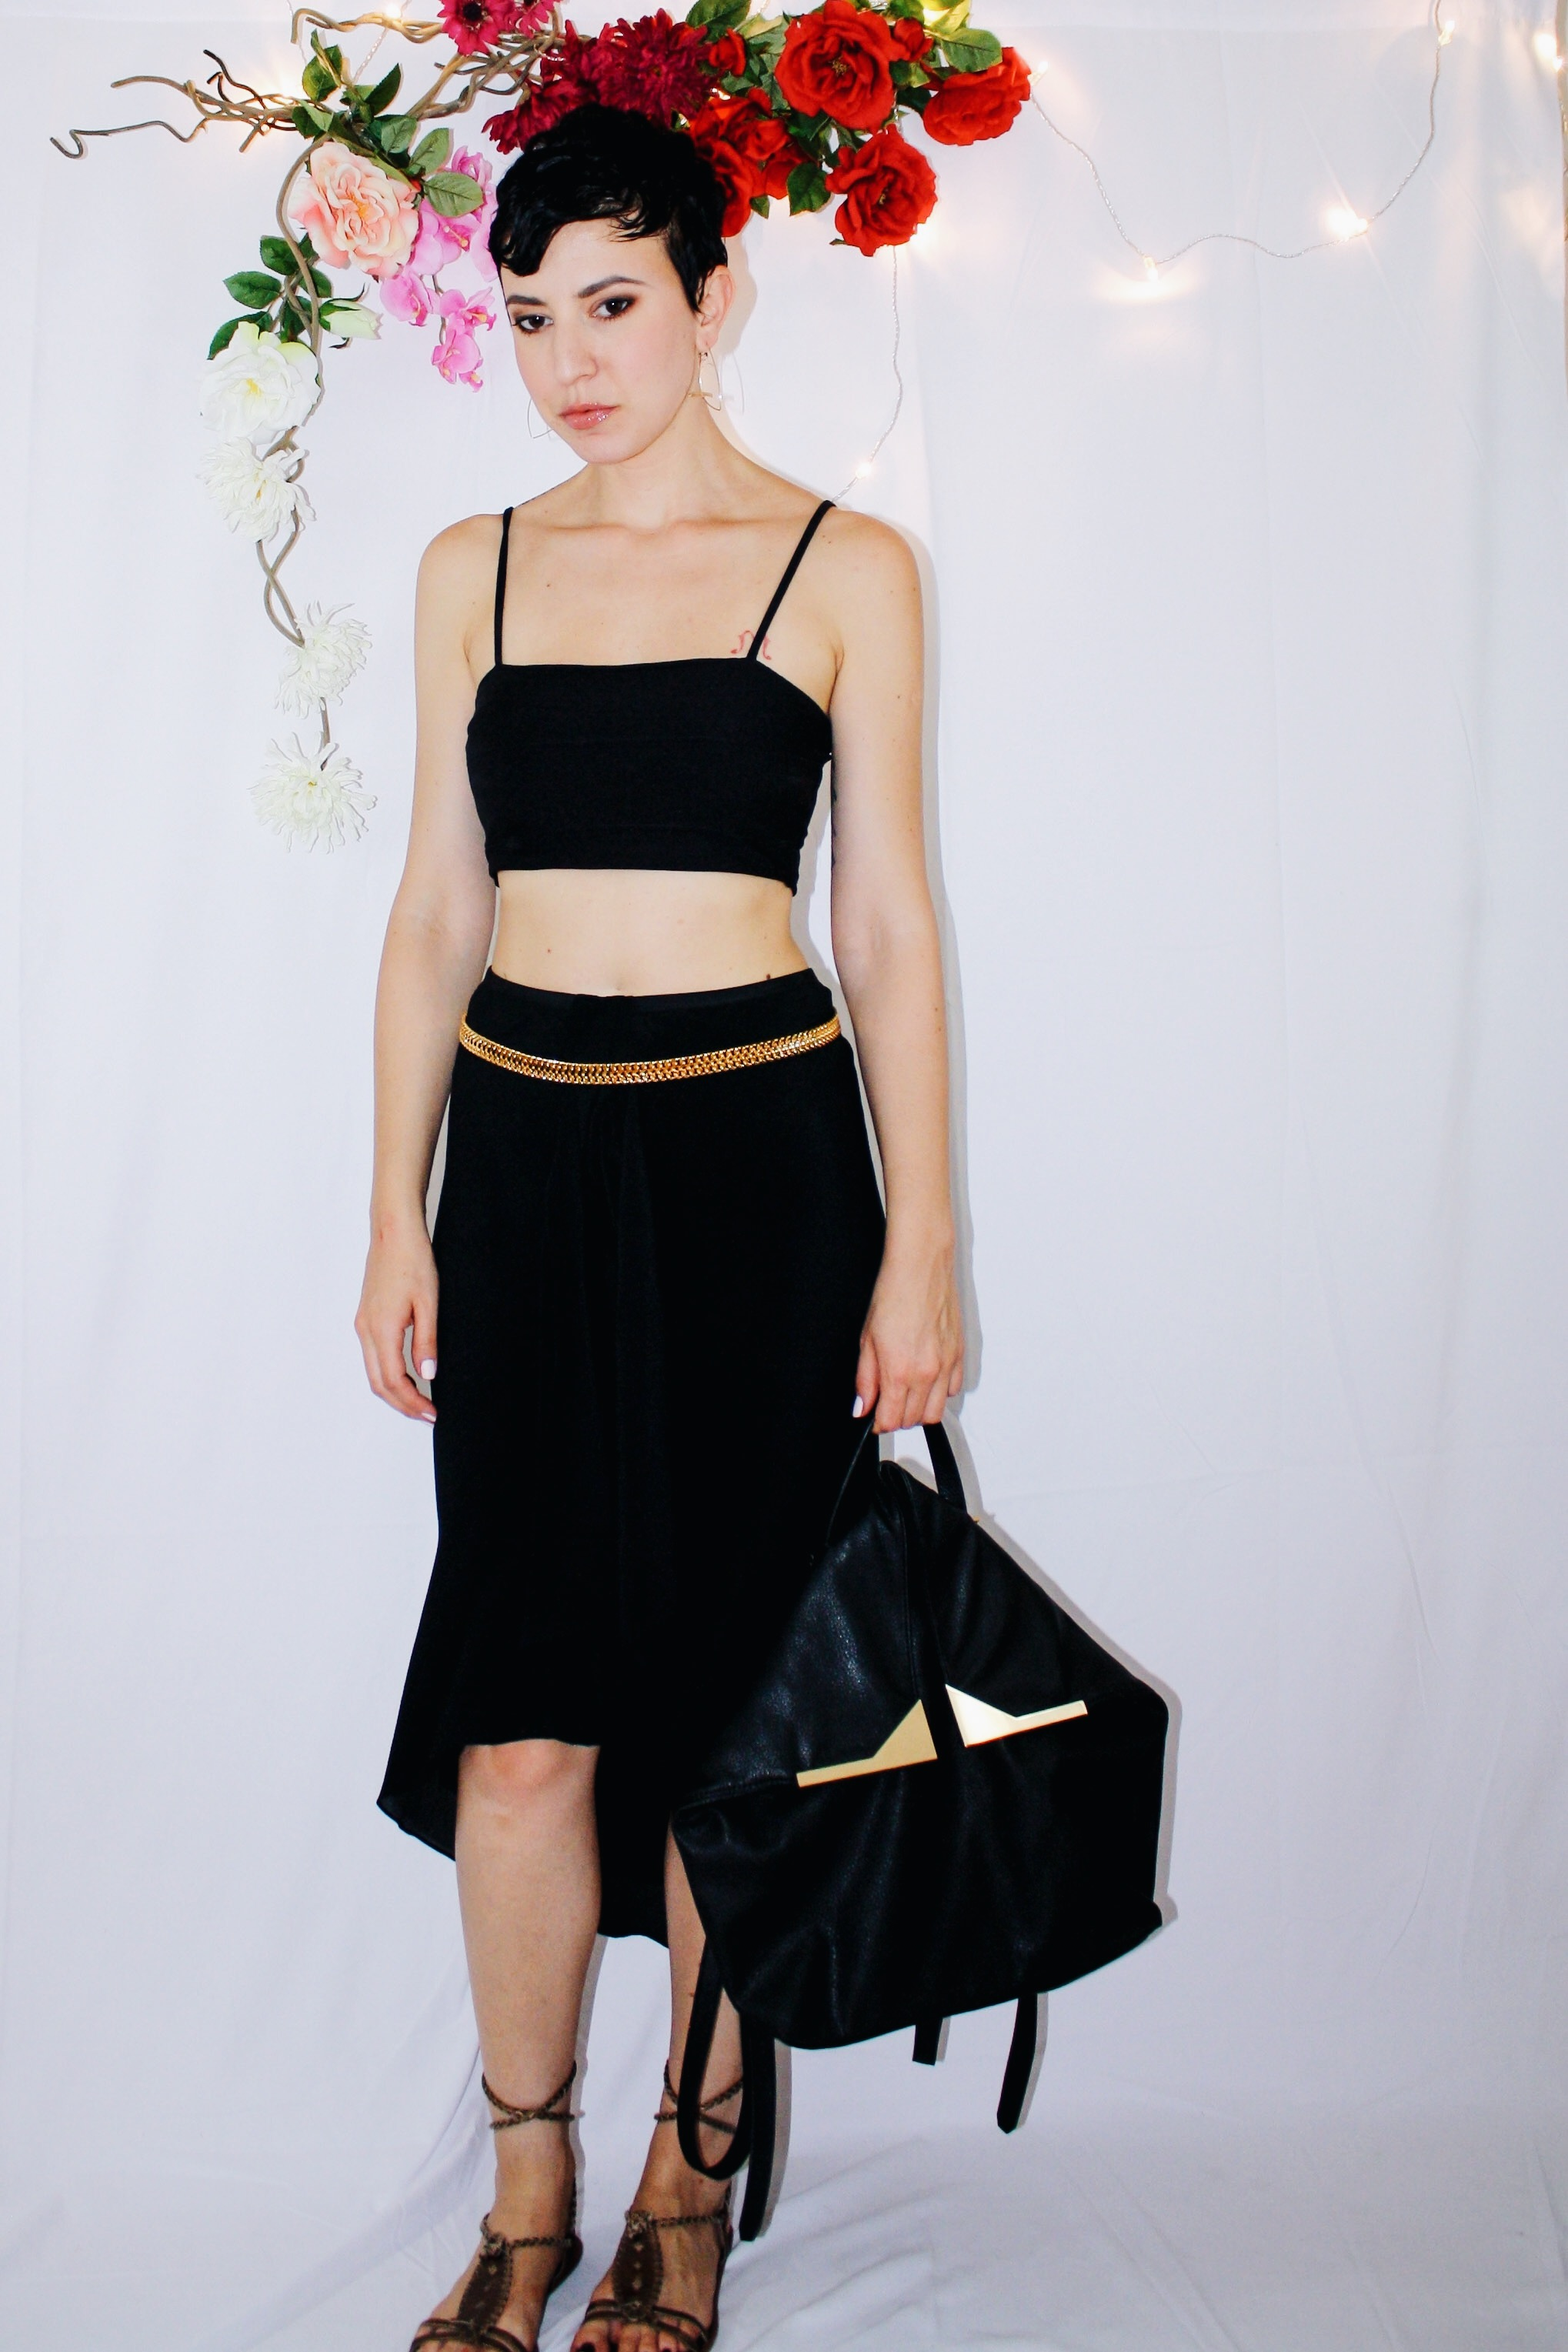 heatwave outfit waterfall skirt black crop top lace up sandal backpack 3